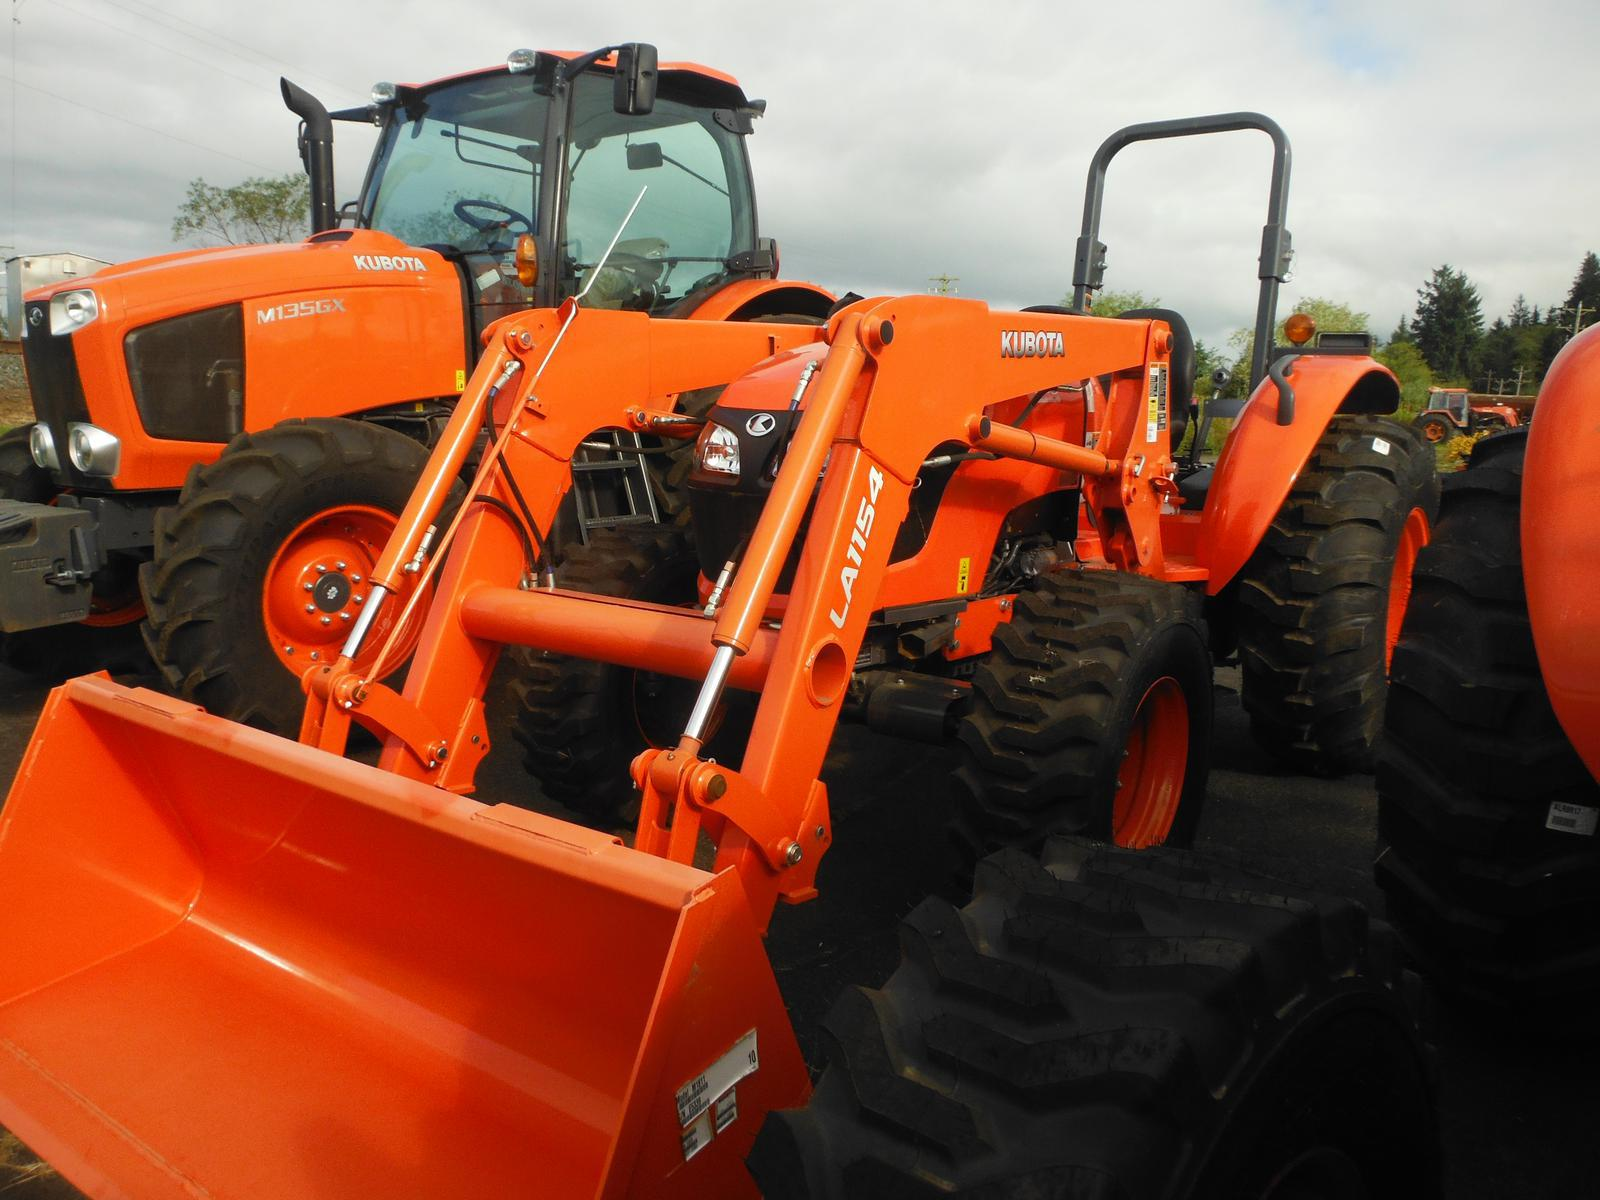 Kubota M5660SUHD 4WD for sale in Tillamook, OR  Boyd's